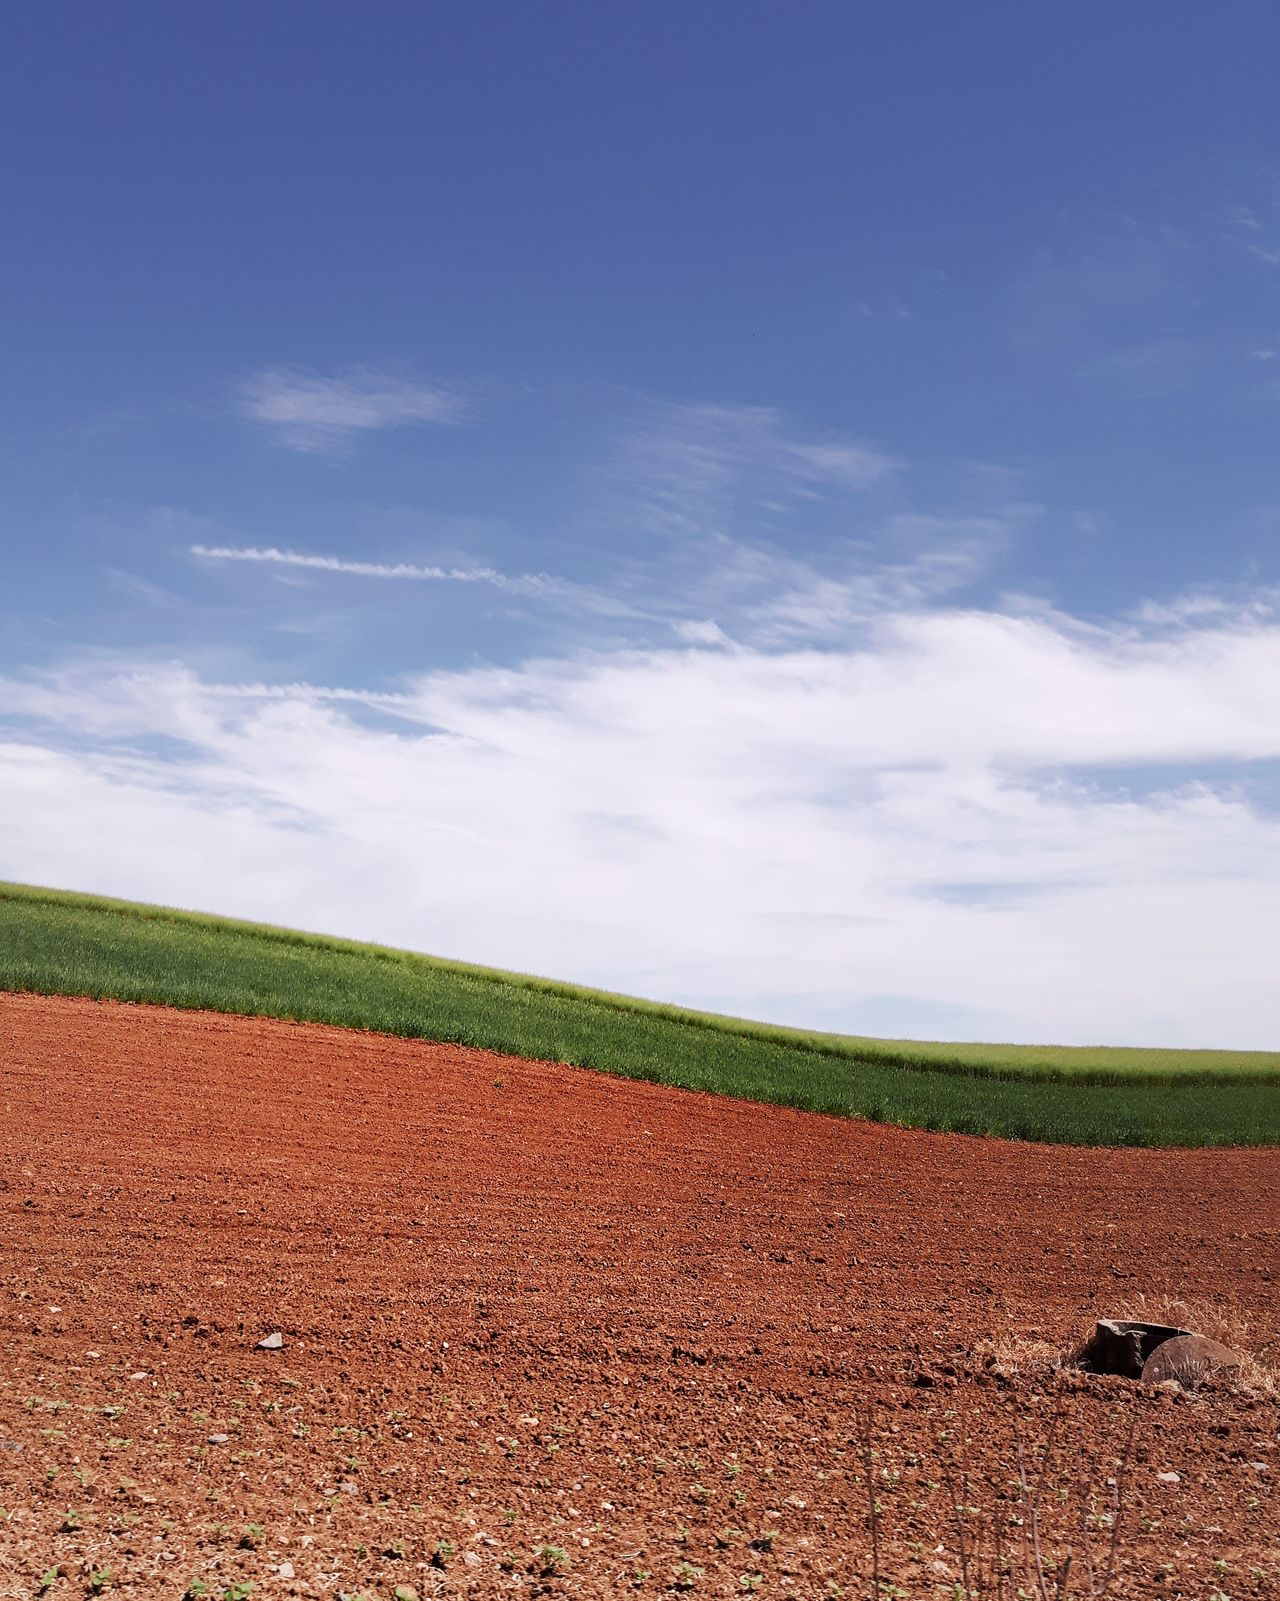 Agriculture Field Rural Scene Crop  Growth Cereal Plant No People Nature Cloud - Sky Outdoors Beauty In Nature Plowed Field Geometry Landscape Landscape_photography Instagramer Umeugram Portugal Alentejo Landscapes Alentejo-Portugal